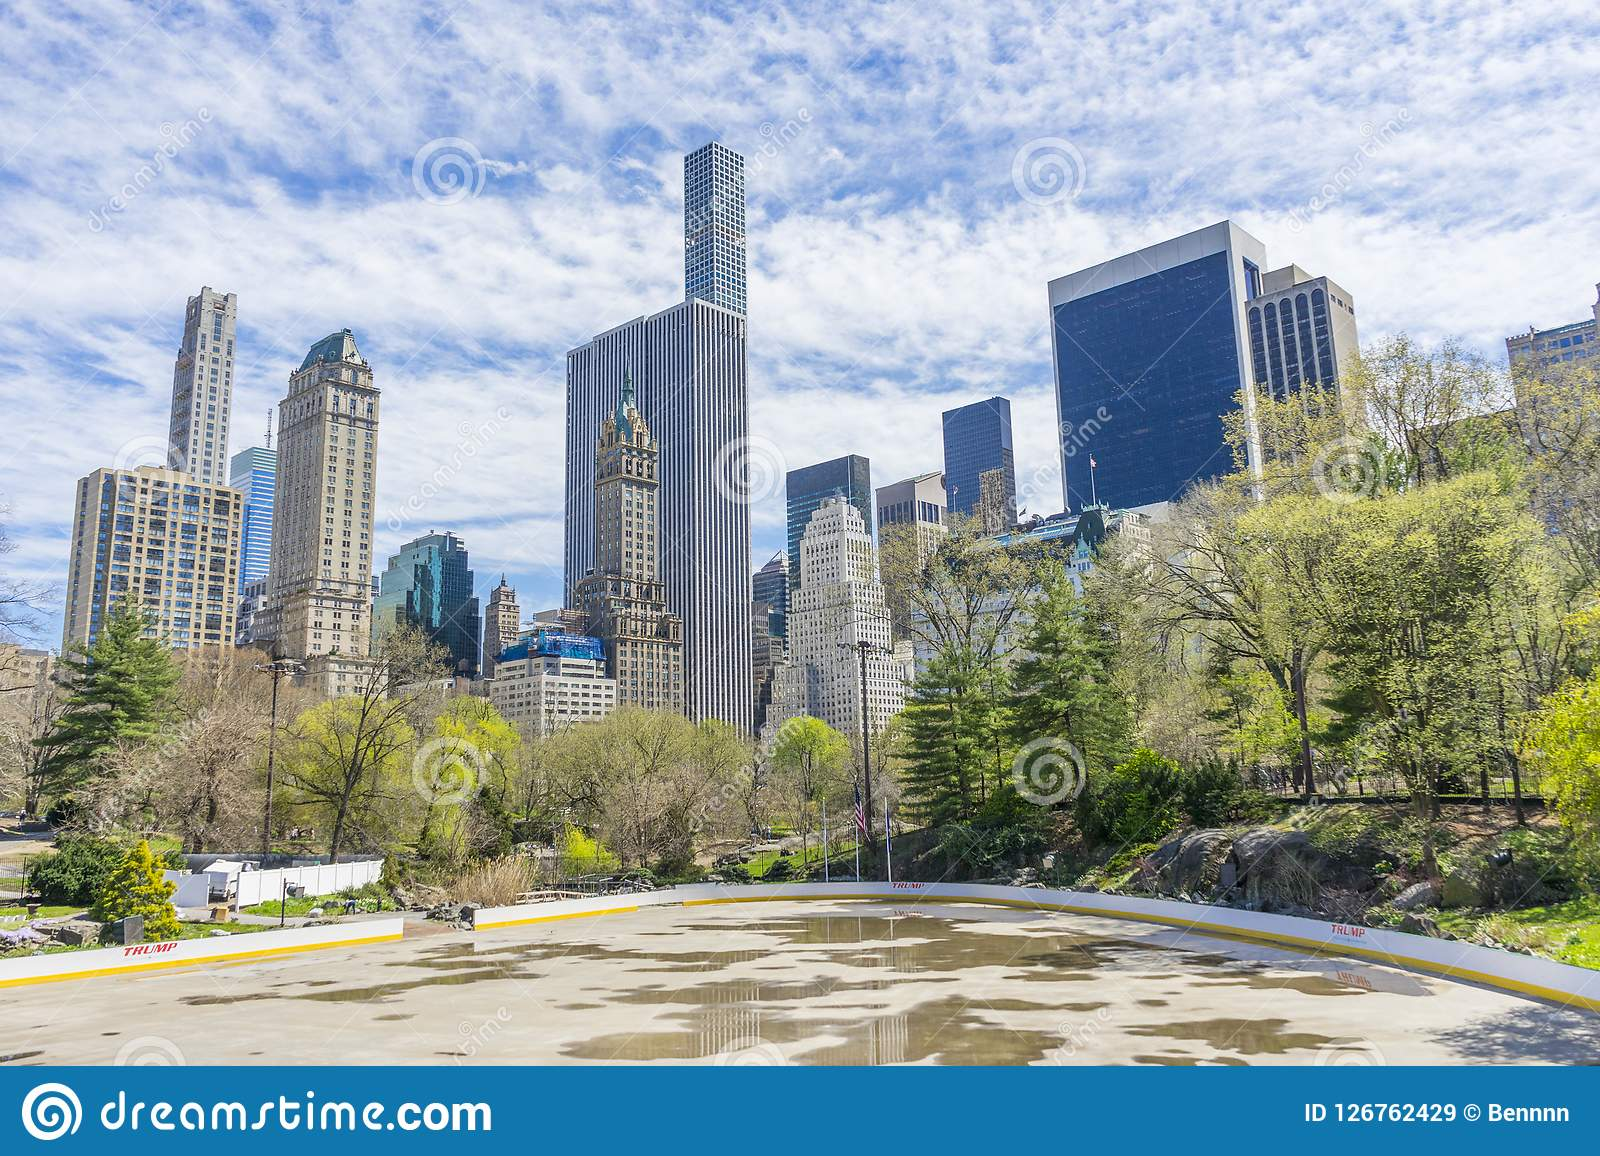 The Central Park in sunny day in New York,USA. The Central Park in sunny day with Manhattan skyscrapers in the background in New York,USA Royalty Free Stock Images